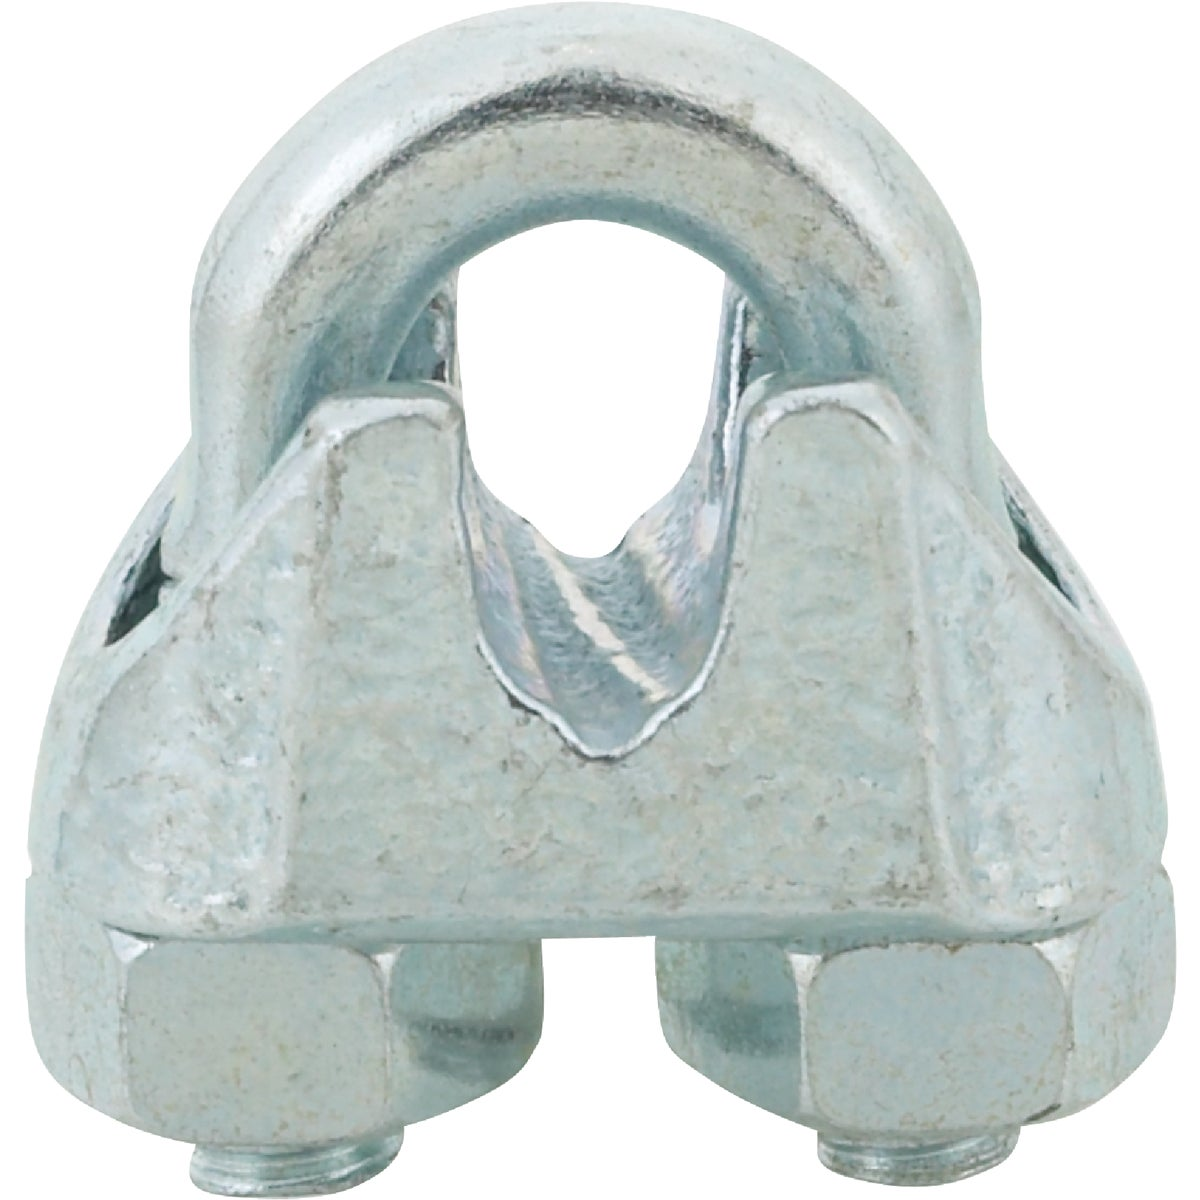 "1/16"" WIRE ROPE CLIP - T7670409 by Cooper Campbell Apex"